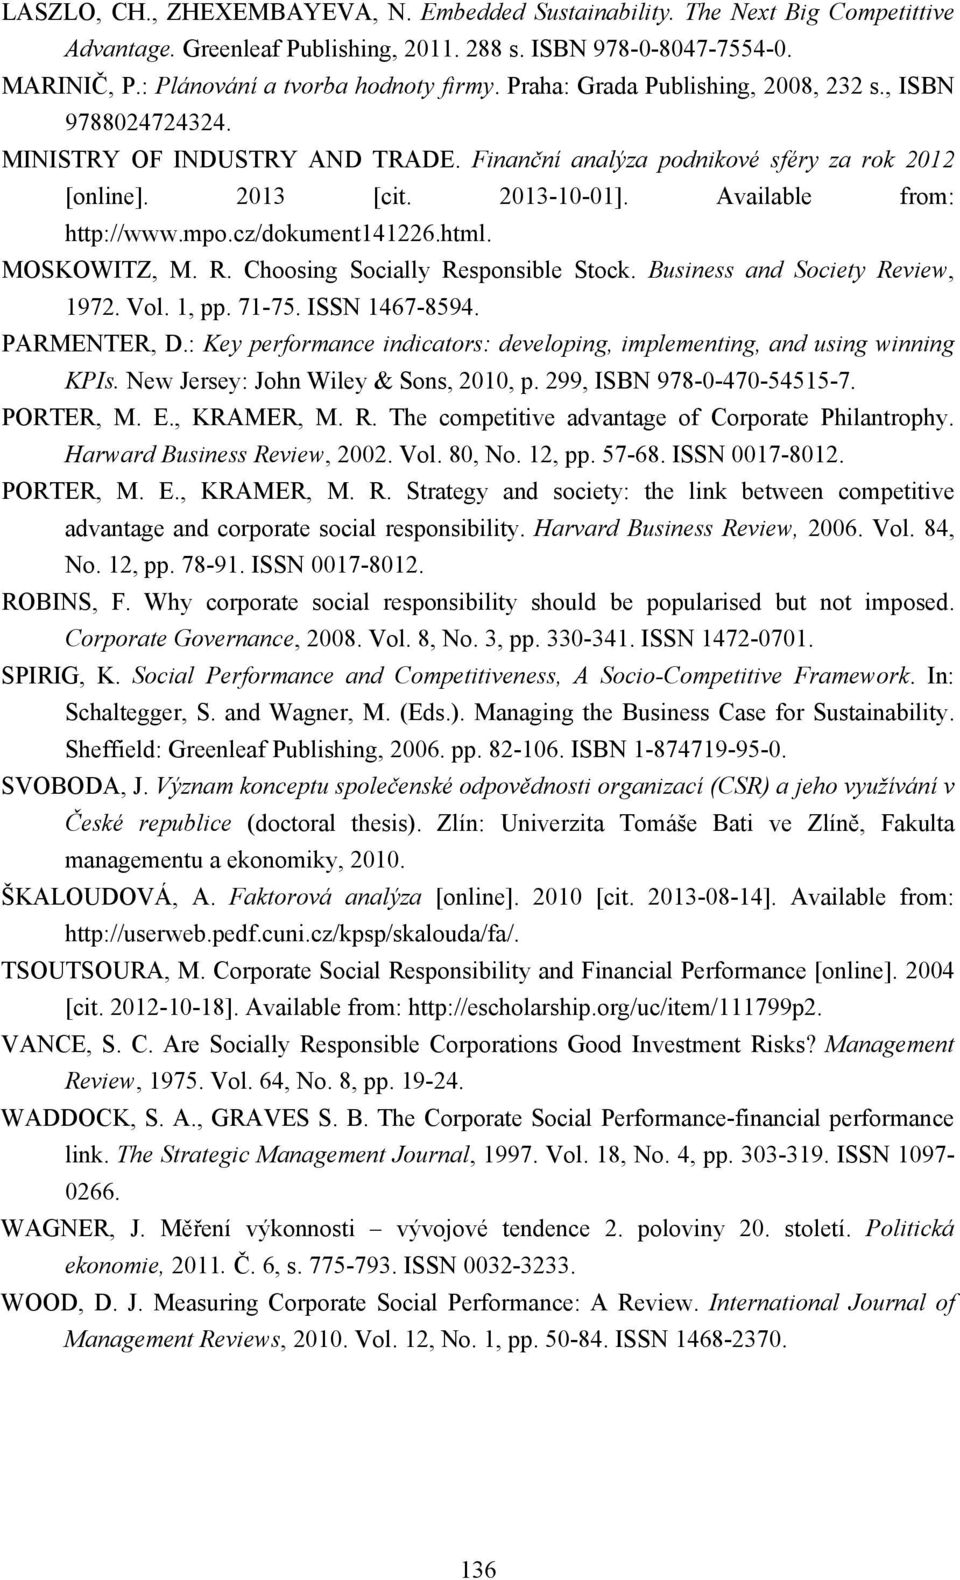 mpo.cz/dokument141226.html. MOSKOWITZ, M. R. Choosing Socially Responsible Stock. Business and Society Review, 1972. Vol. 1, pp. 71-75. ISSN 1467-8594. PARMENTER, D.